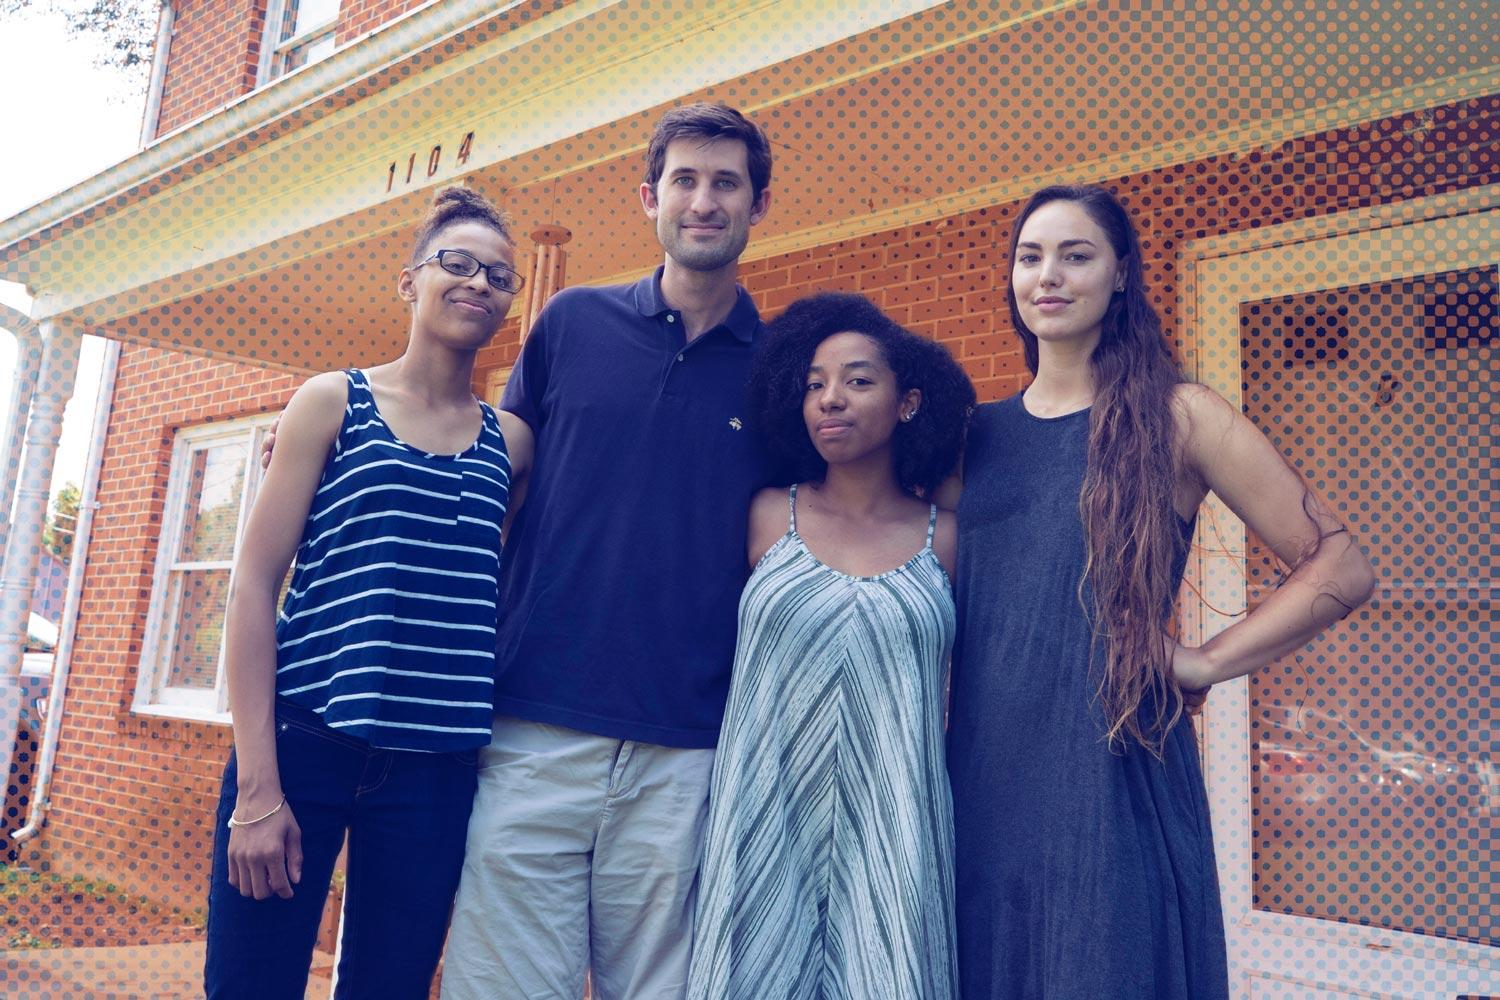 Third-year student Ameenah Elam, Perkins House Director Garrett Trent and third-year students Dominique DeBose and Isabella Hall in front of The Perkins House. (Photo by Dan Addison, University Communications)